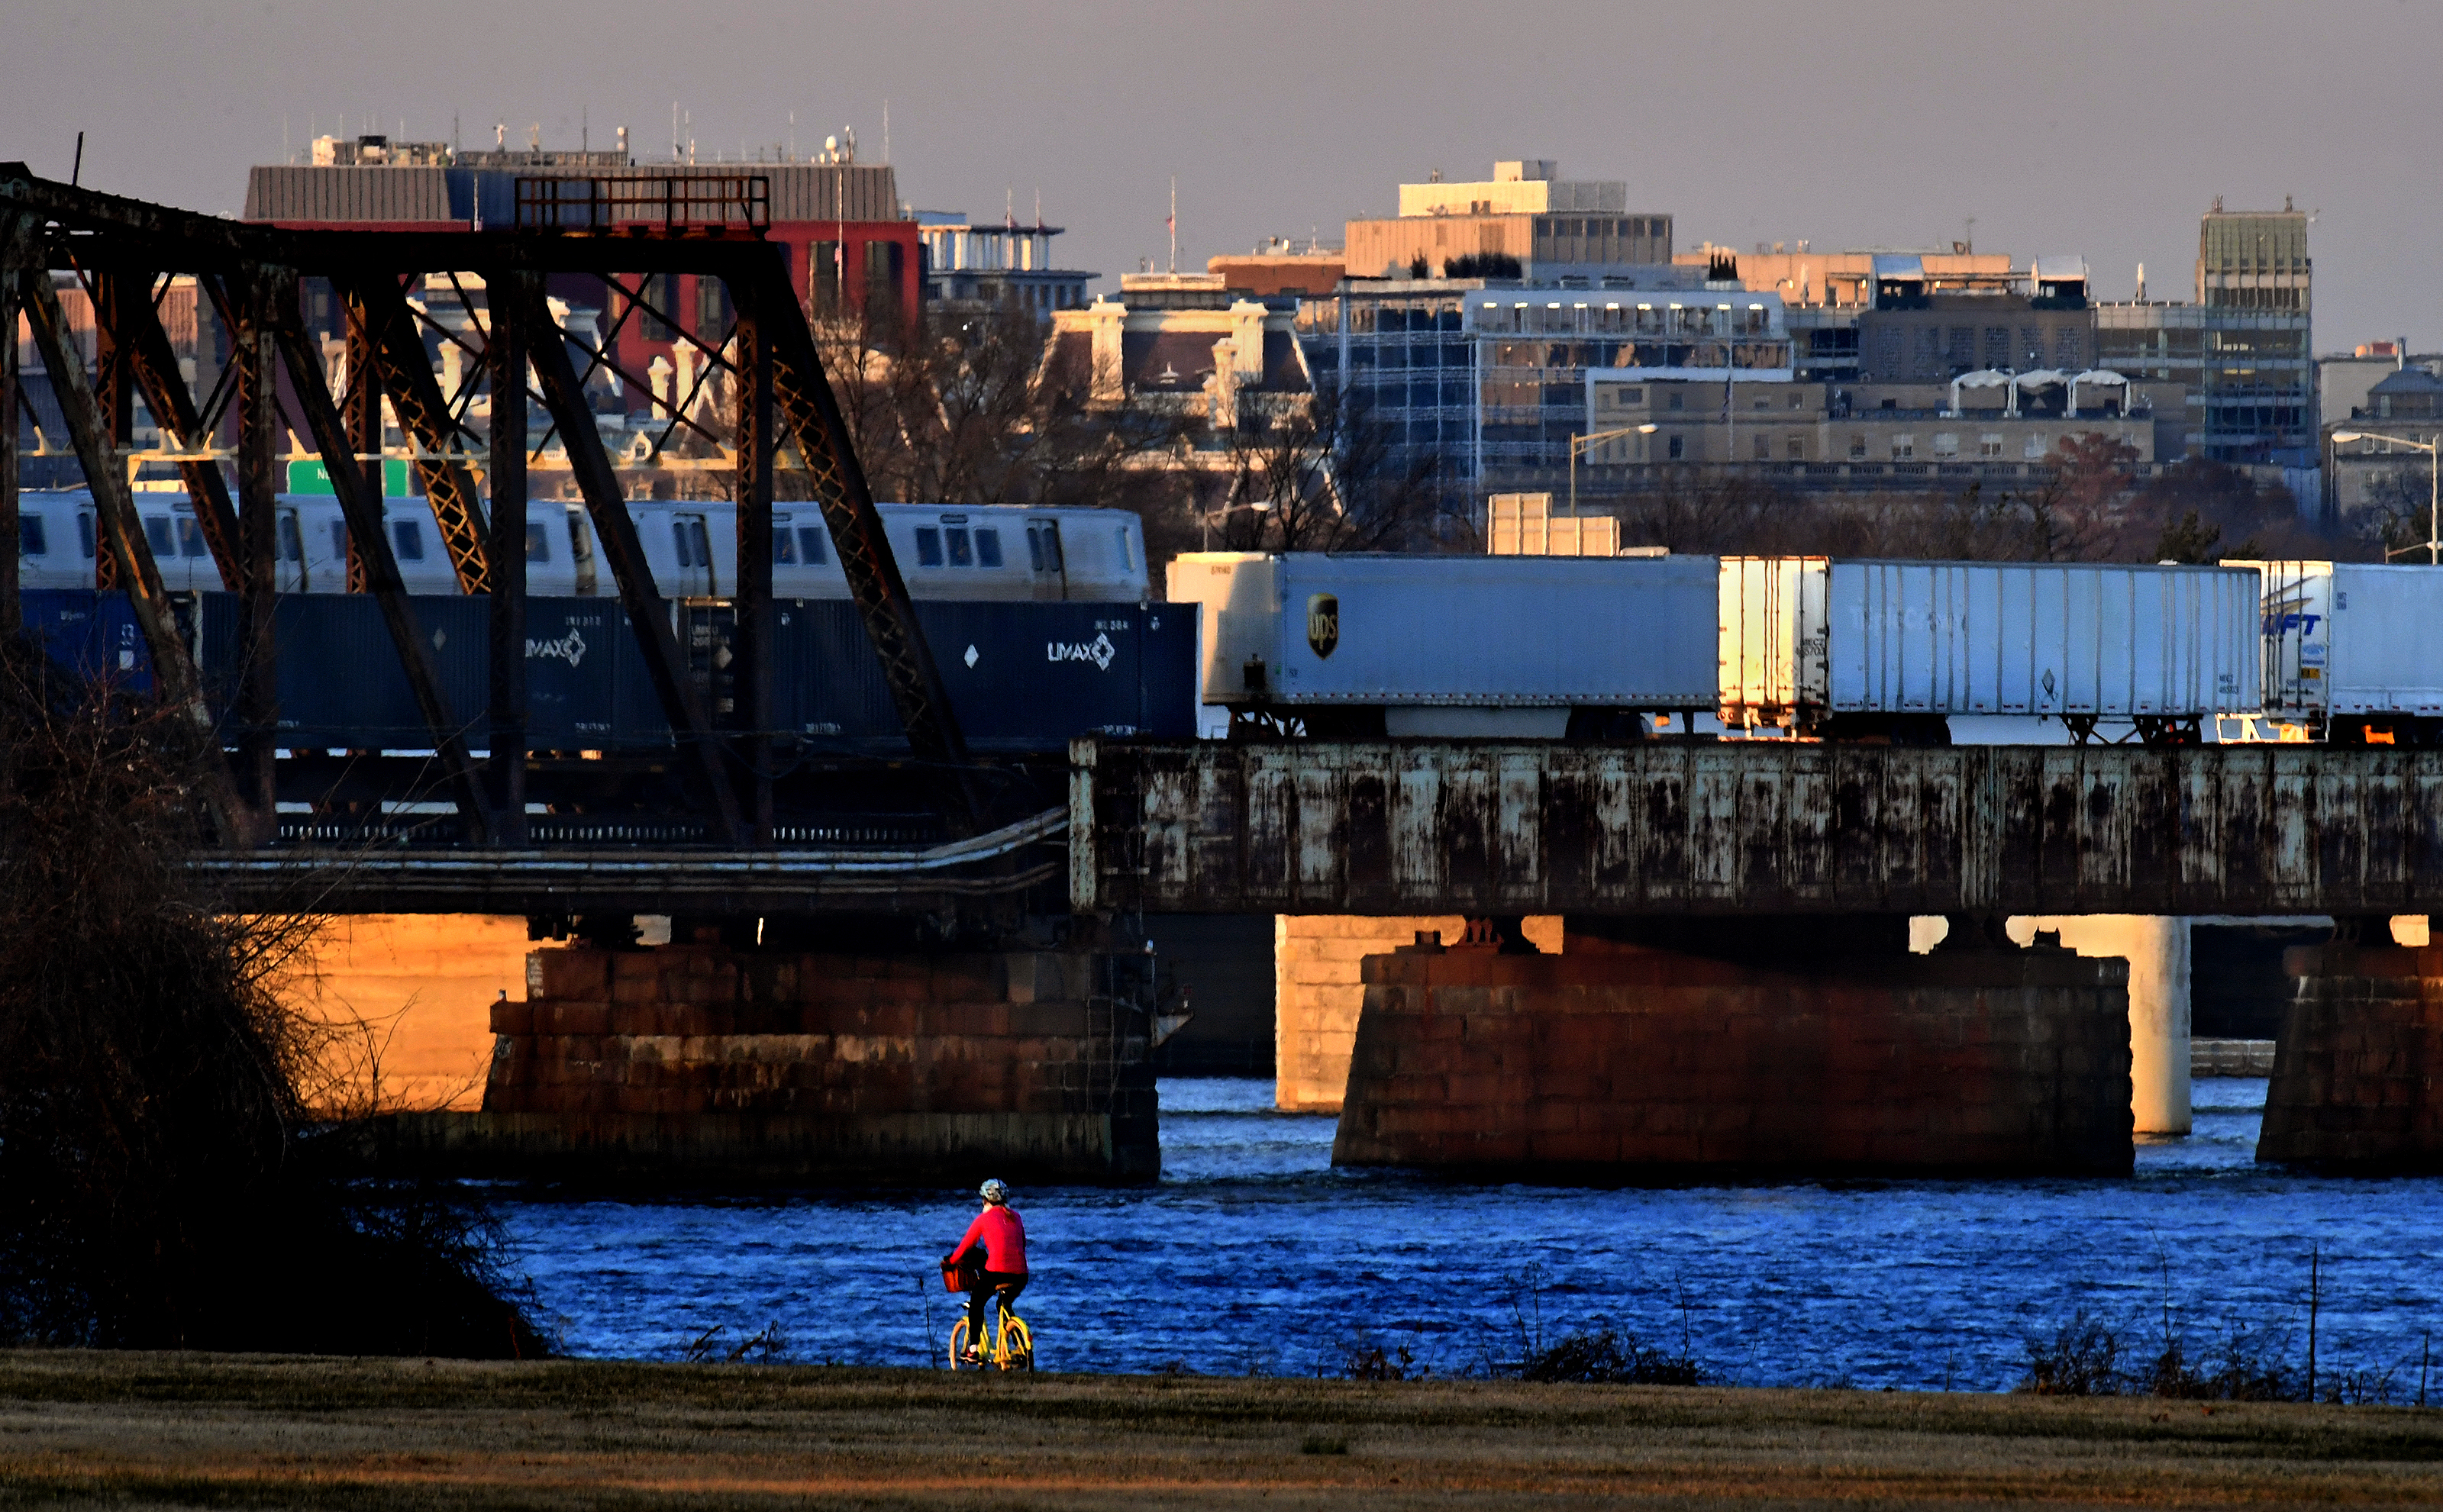 The latest on the rehabilitation and expansion of D.C.'s Long Bridge corridor